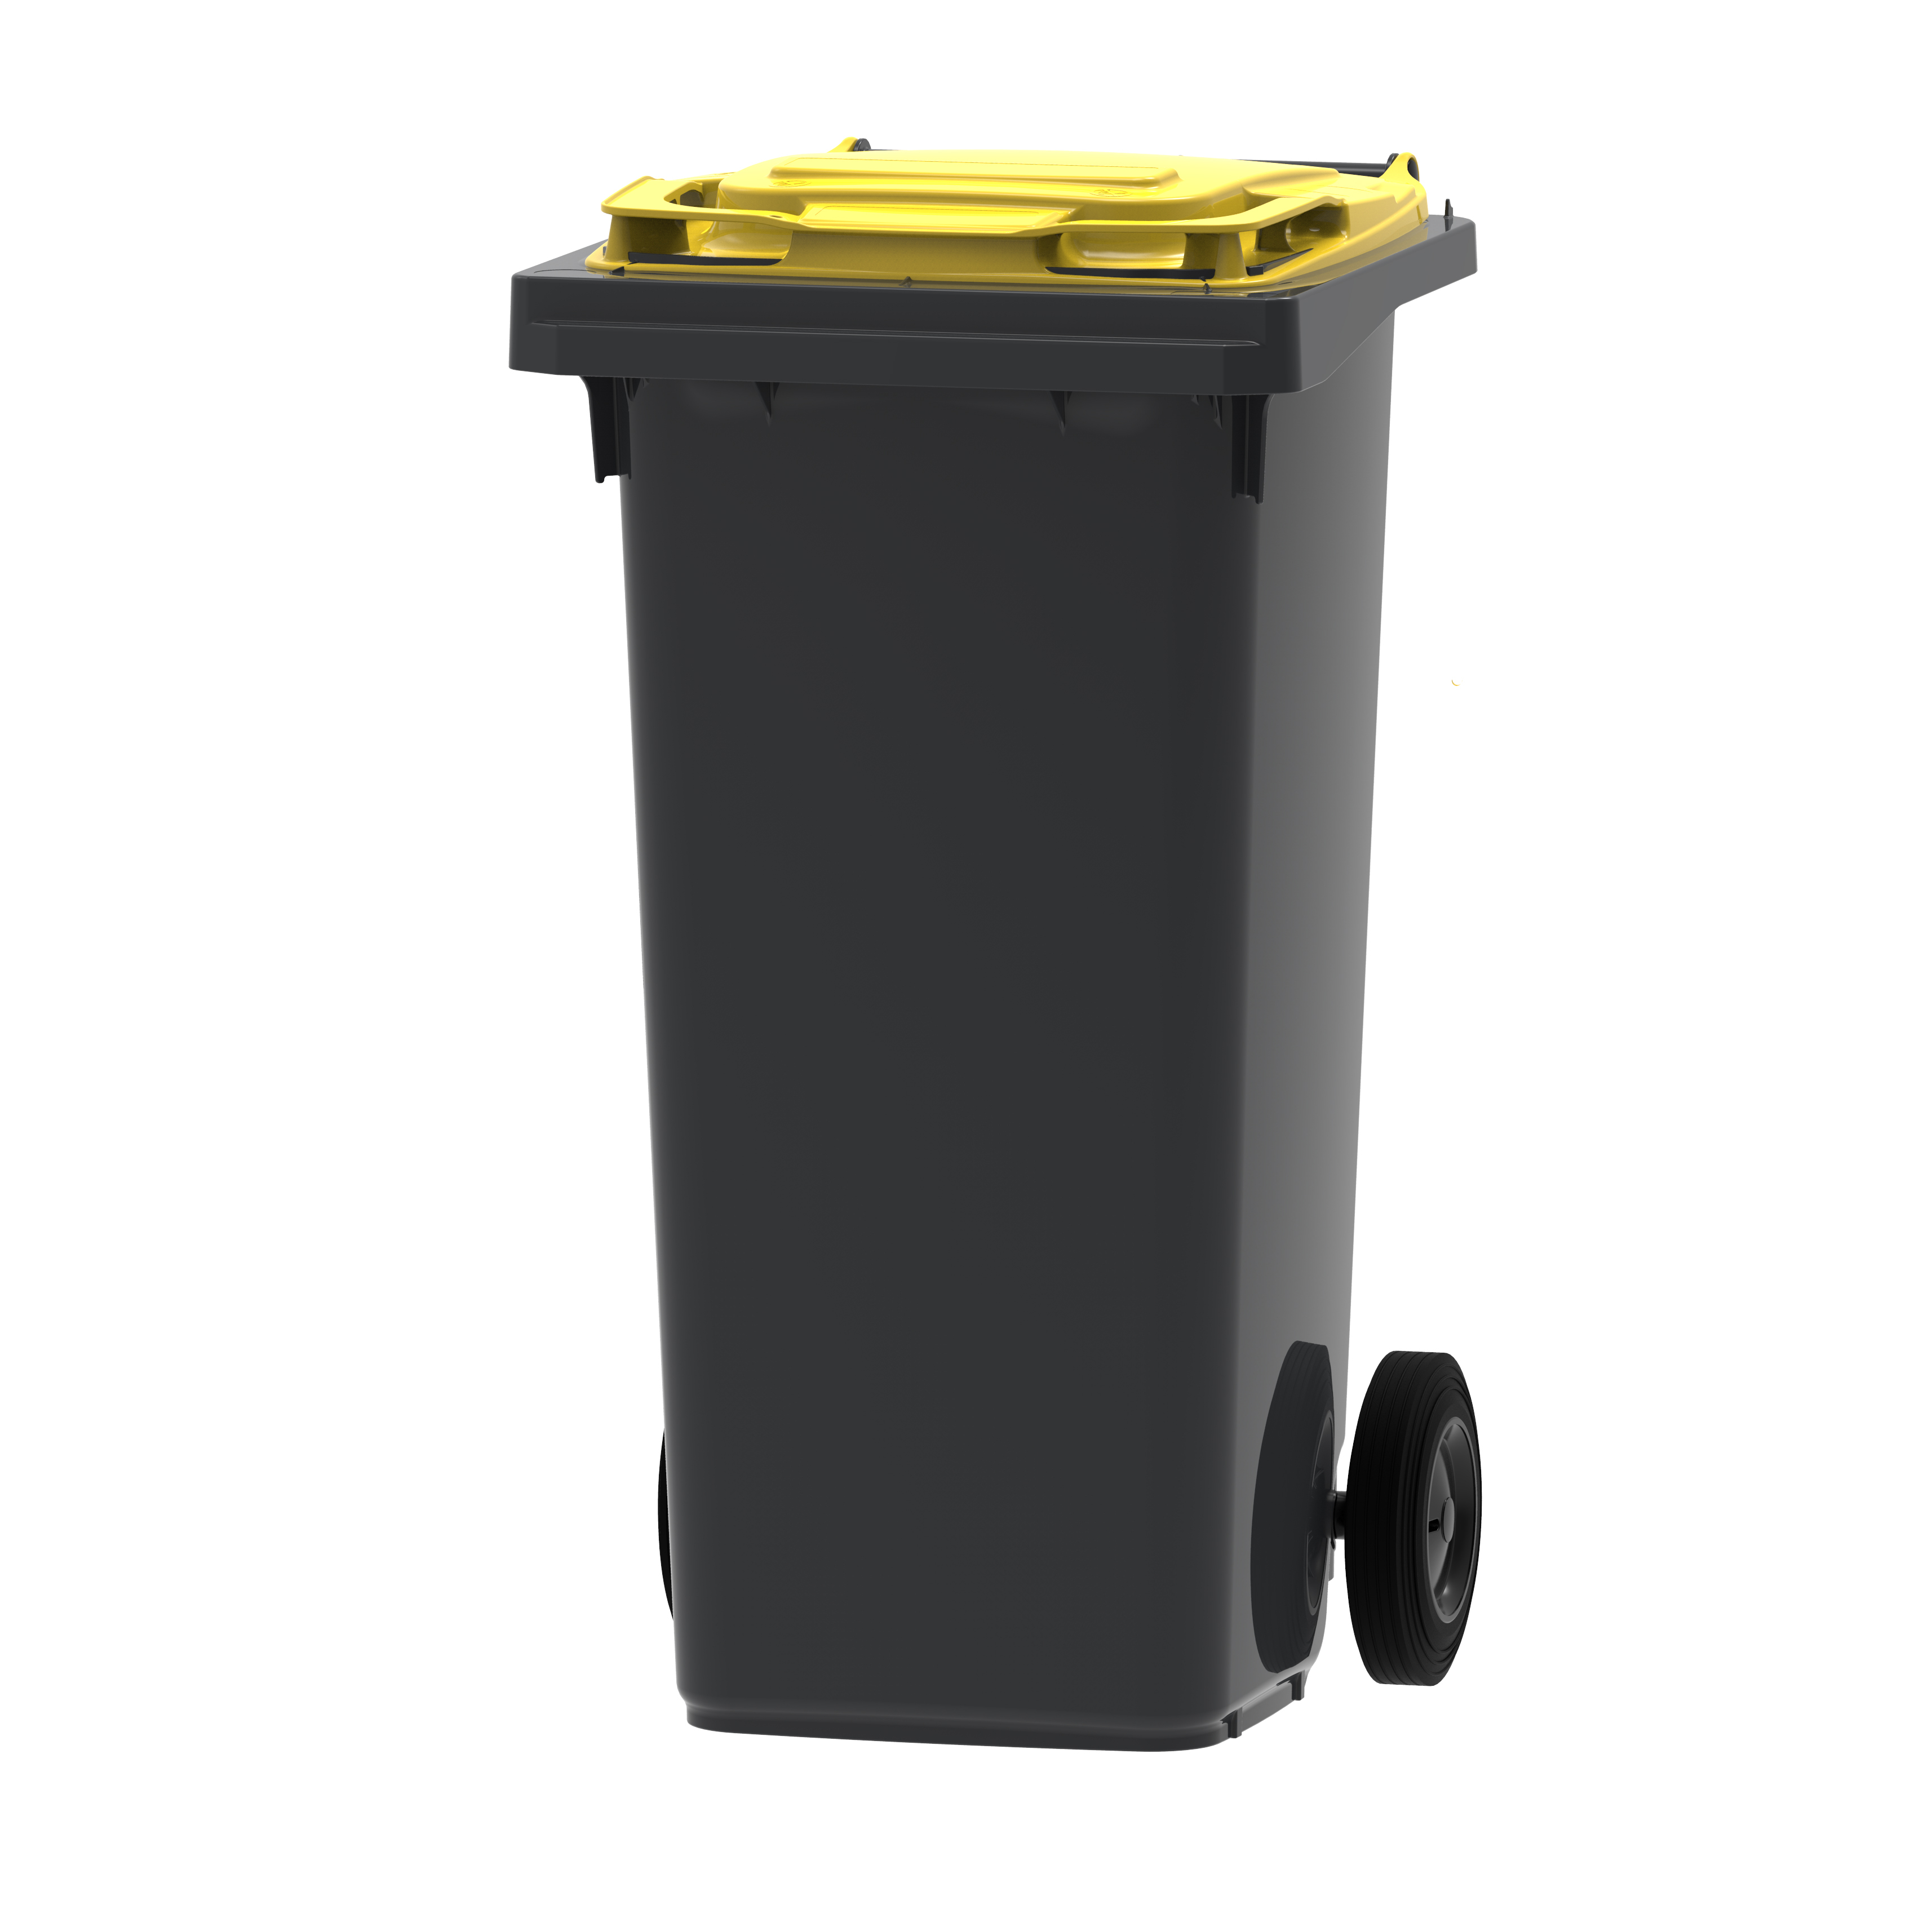 Vepa Bins Mini-container DonkerGrijs/Geel 120 ltr (VB120000G)